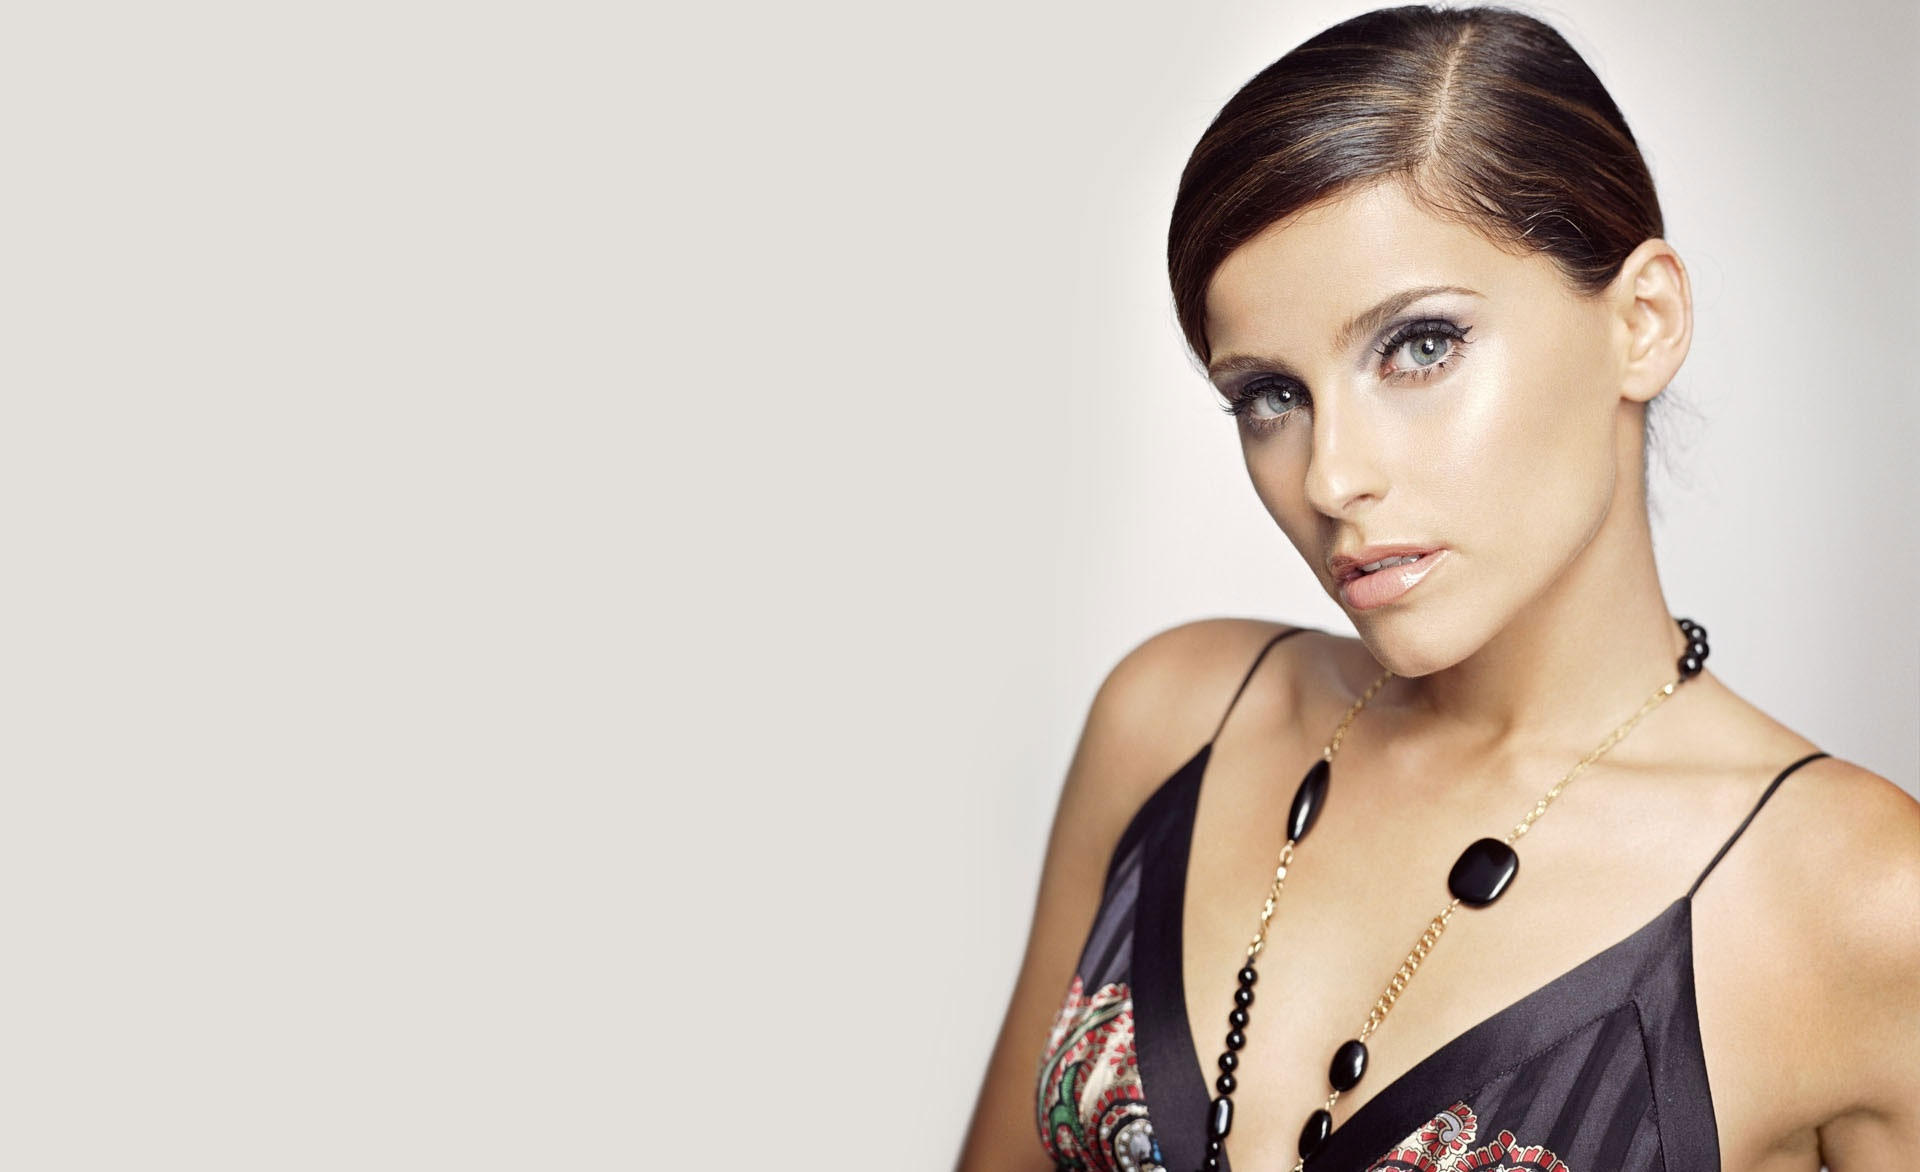 Nelly Furtado Hd Desktop